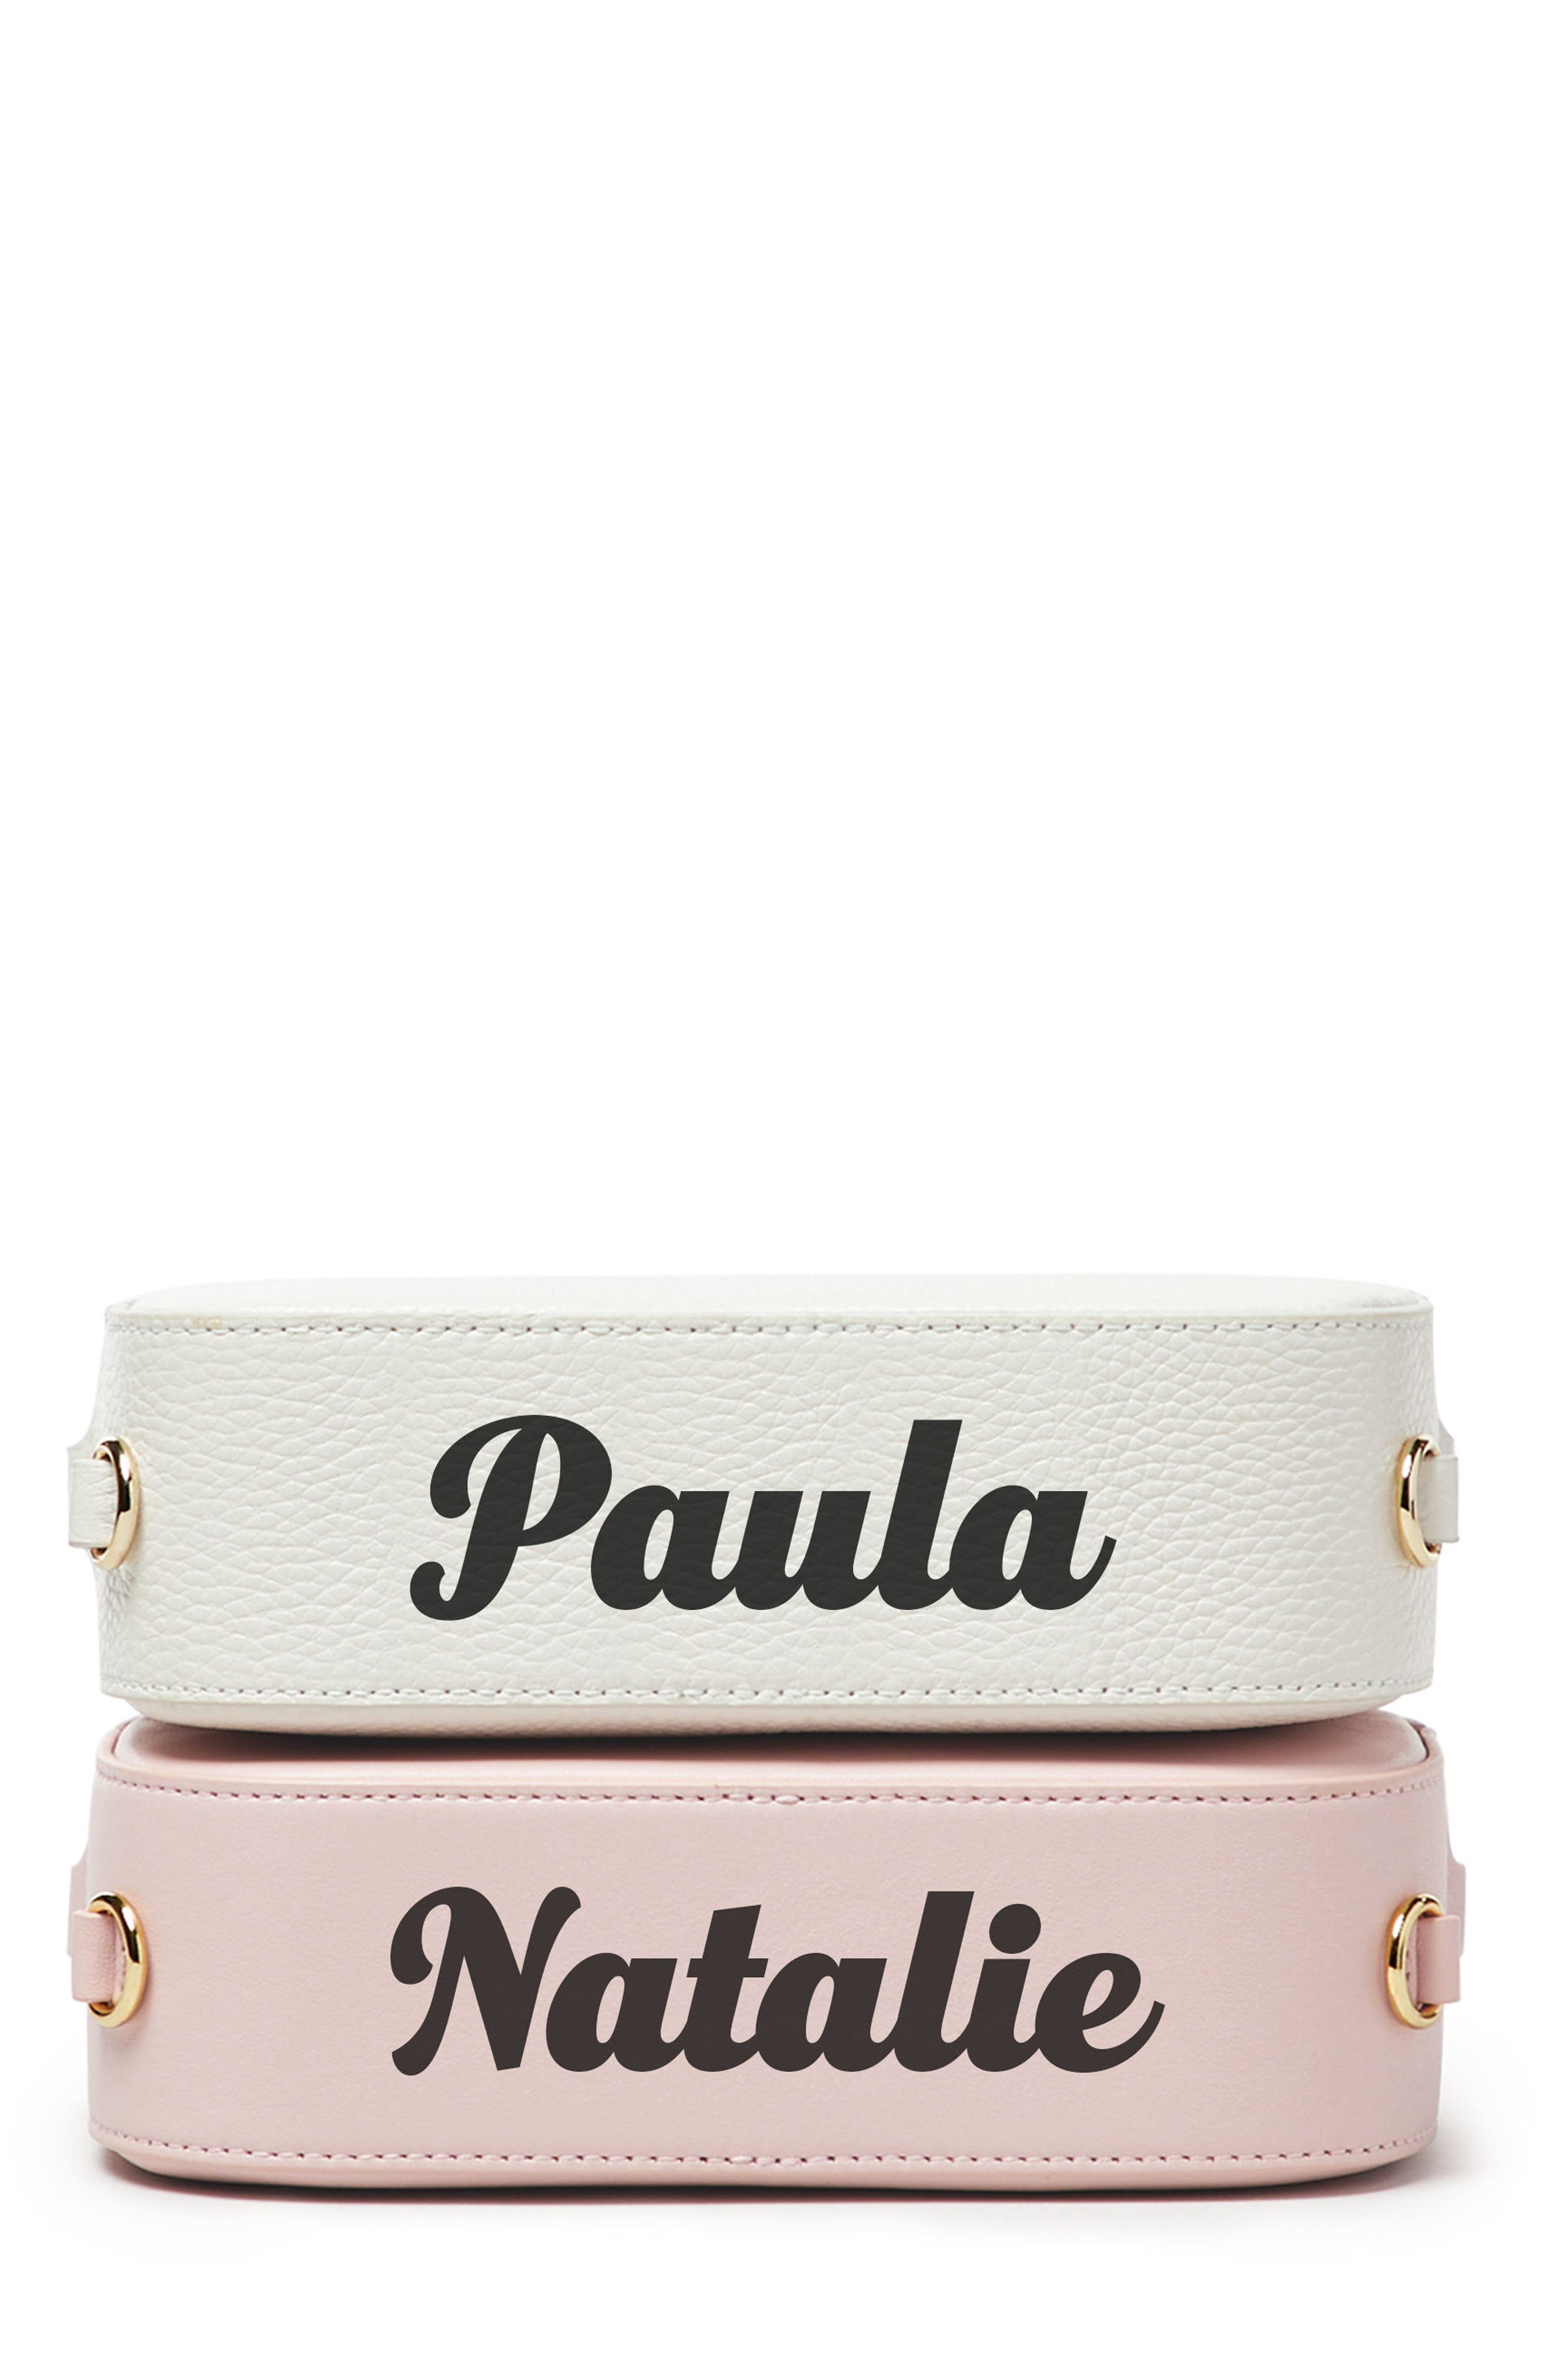 Alternate Image 1 Selected - Pop & Suki Bigger Personalized Camera Bag (Nordstrom Exclusive)